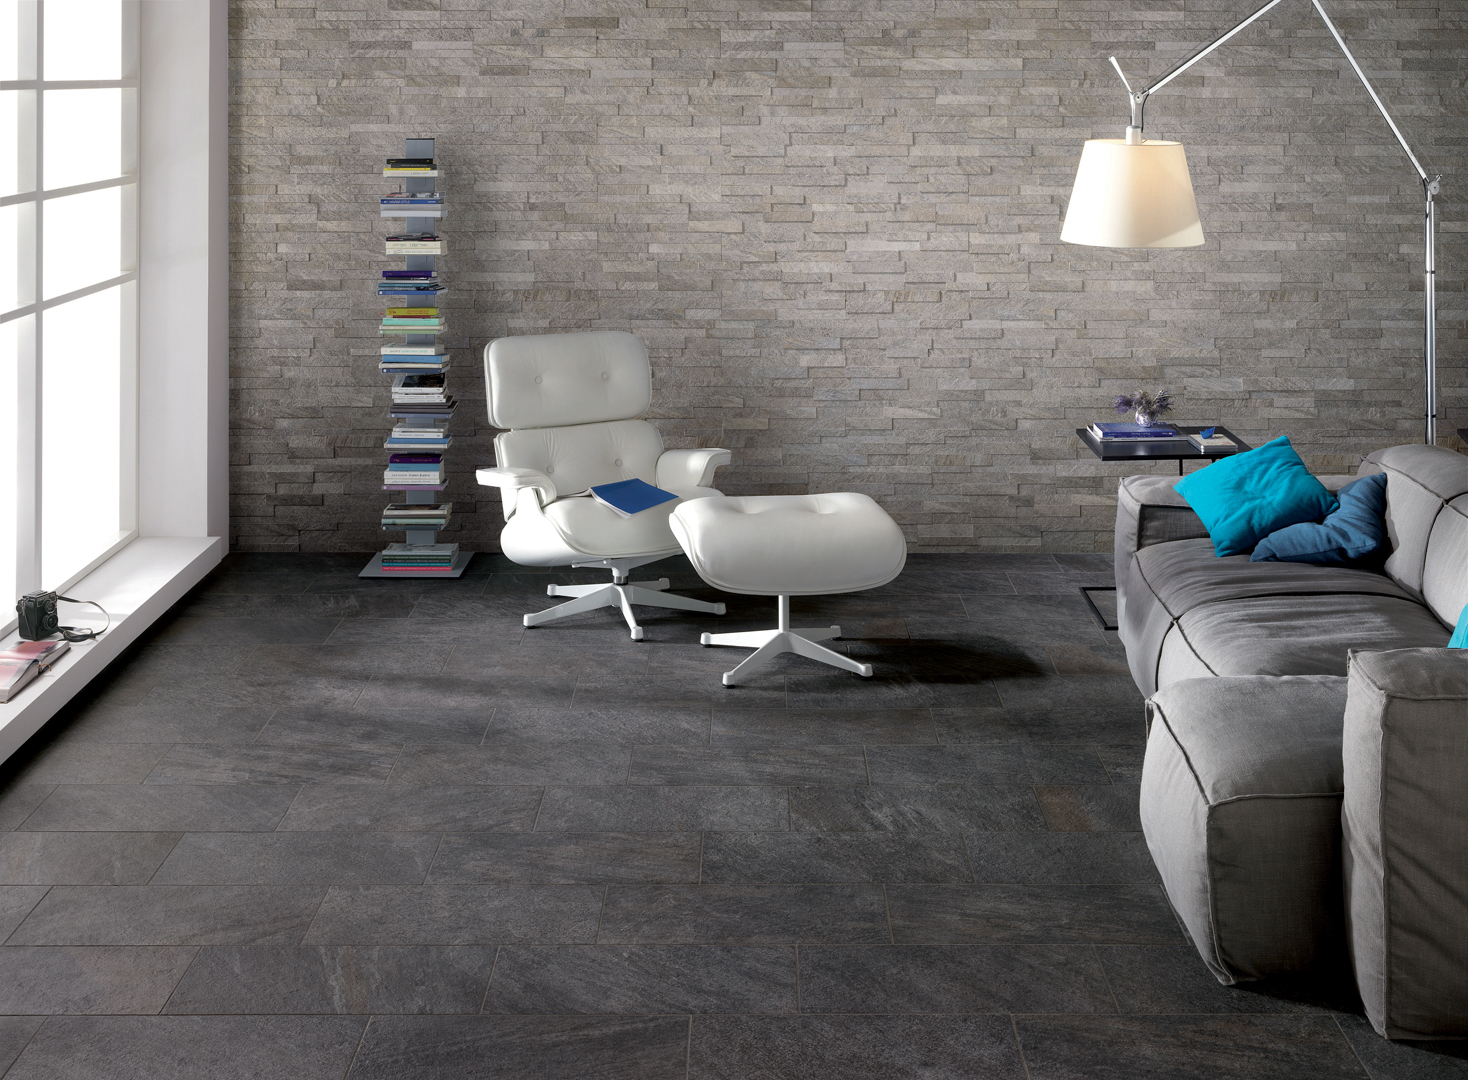 rev tement de sol mur pour int rieur et ext rieur percorsi quartz black by ceramiche keope. Black Bedroom Furniture Sets. Home Design Ideas